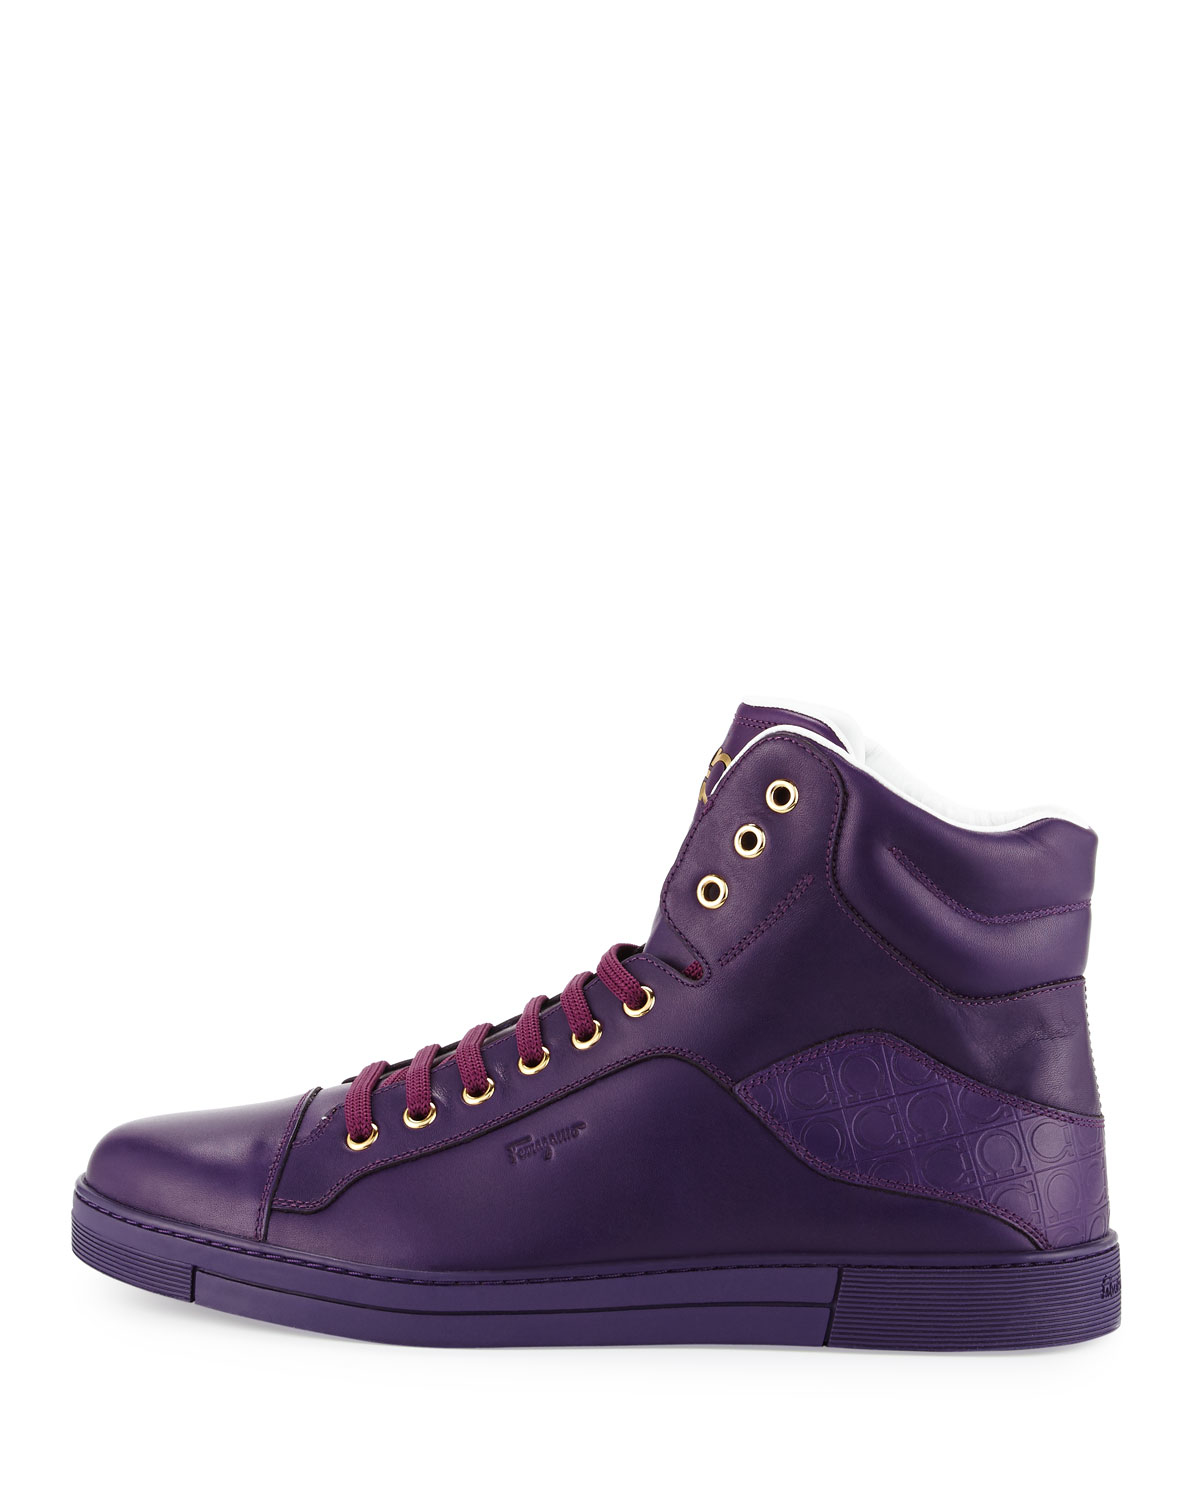 Ferragamo Neiman Marcus Ferragamo Stephen Calfskin High Top Sneaker Purple For Men Lyst